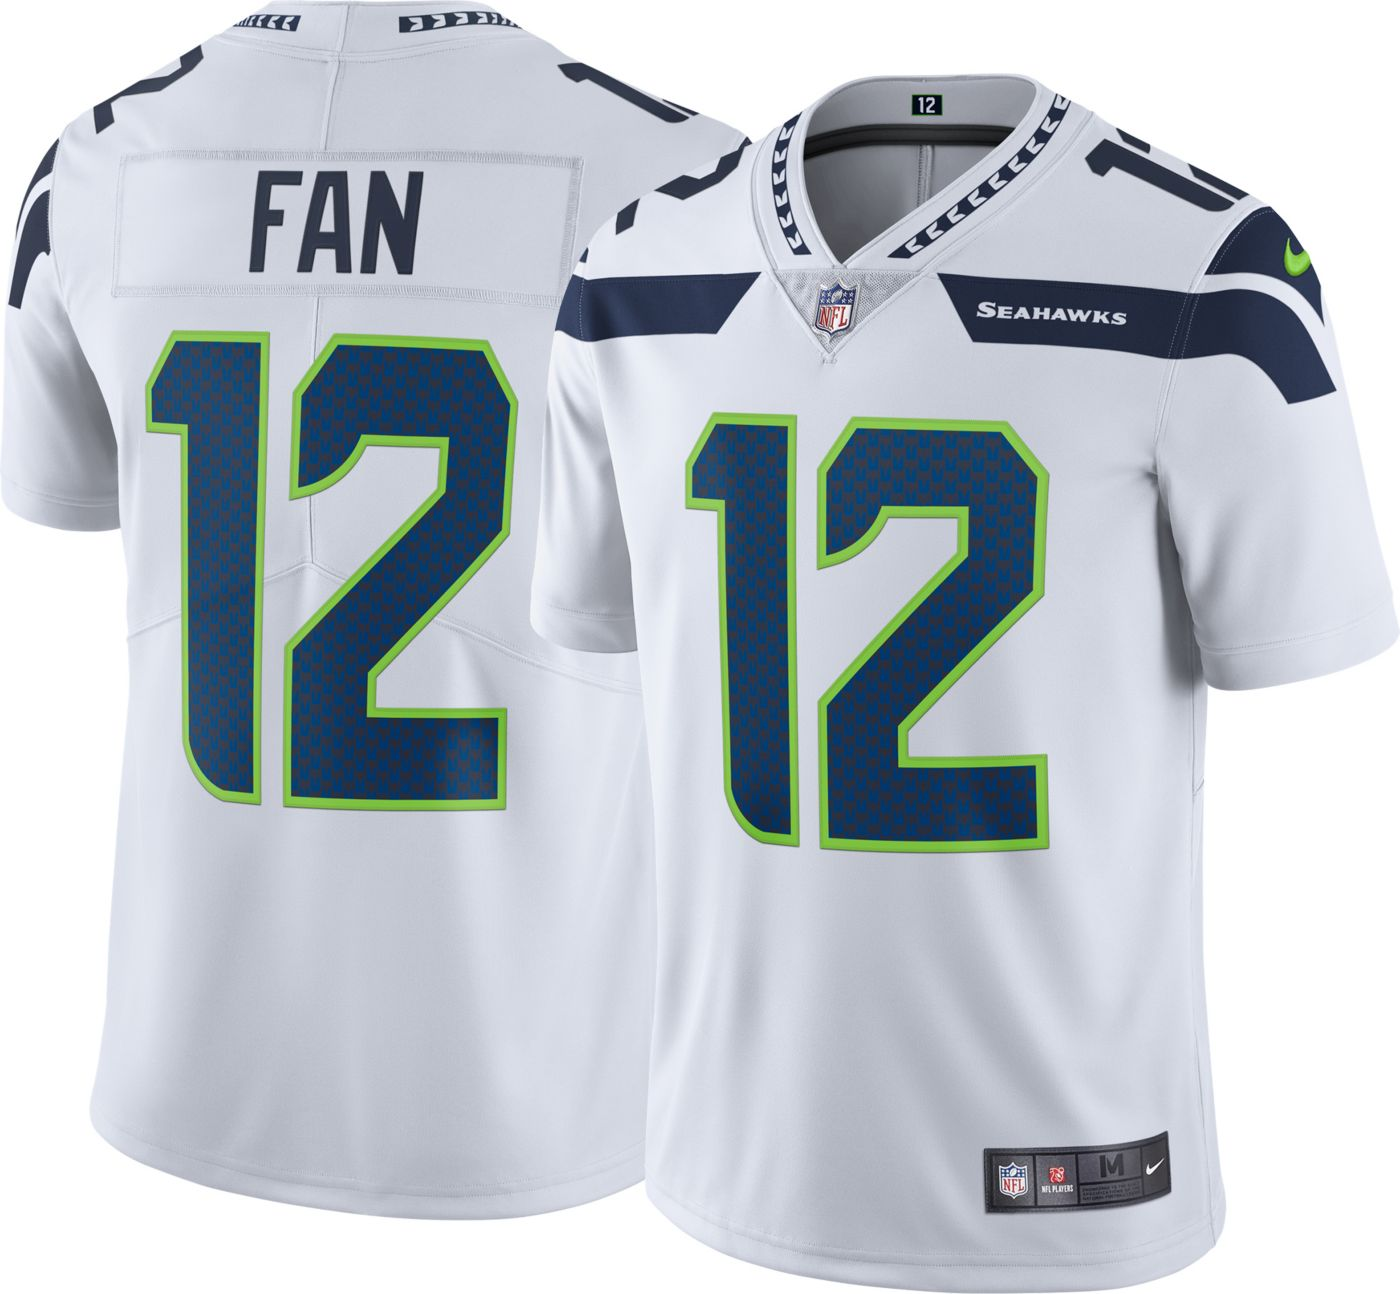 Nike Men's Away Limited Jersey Seattle Seahawks Fan #12